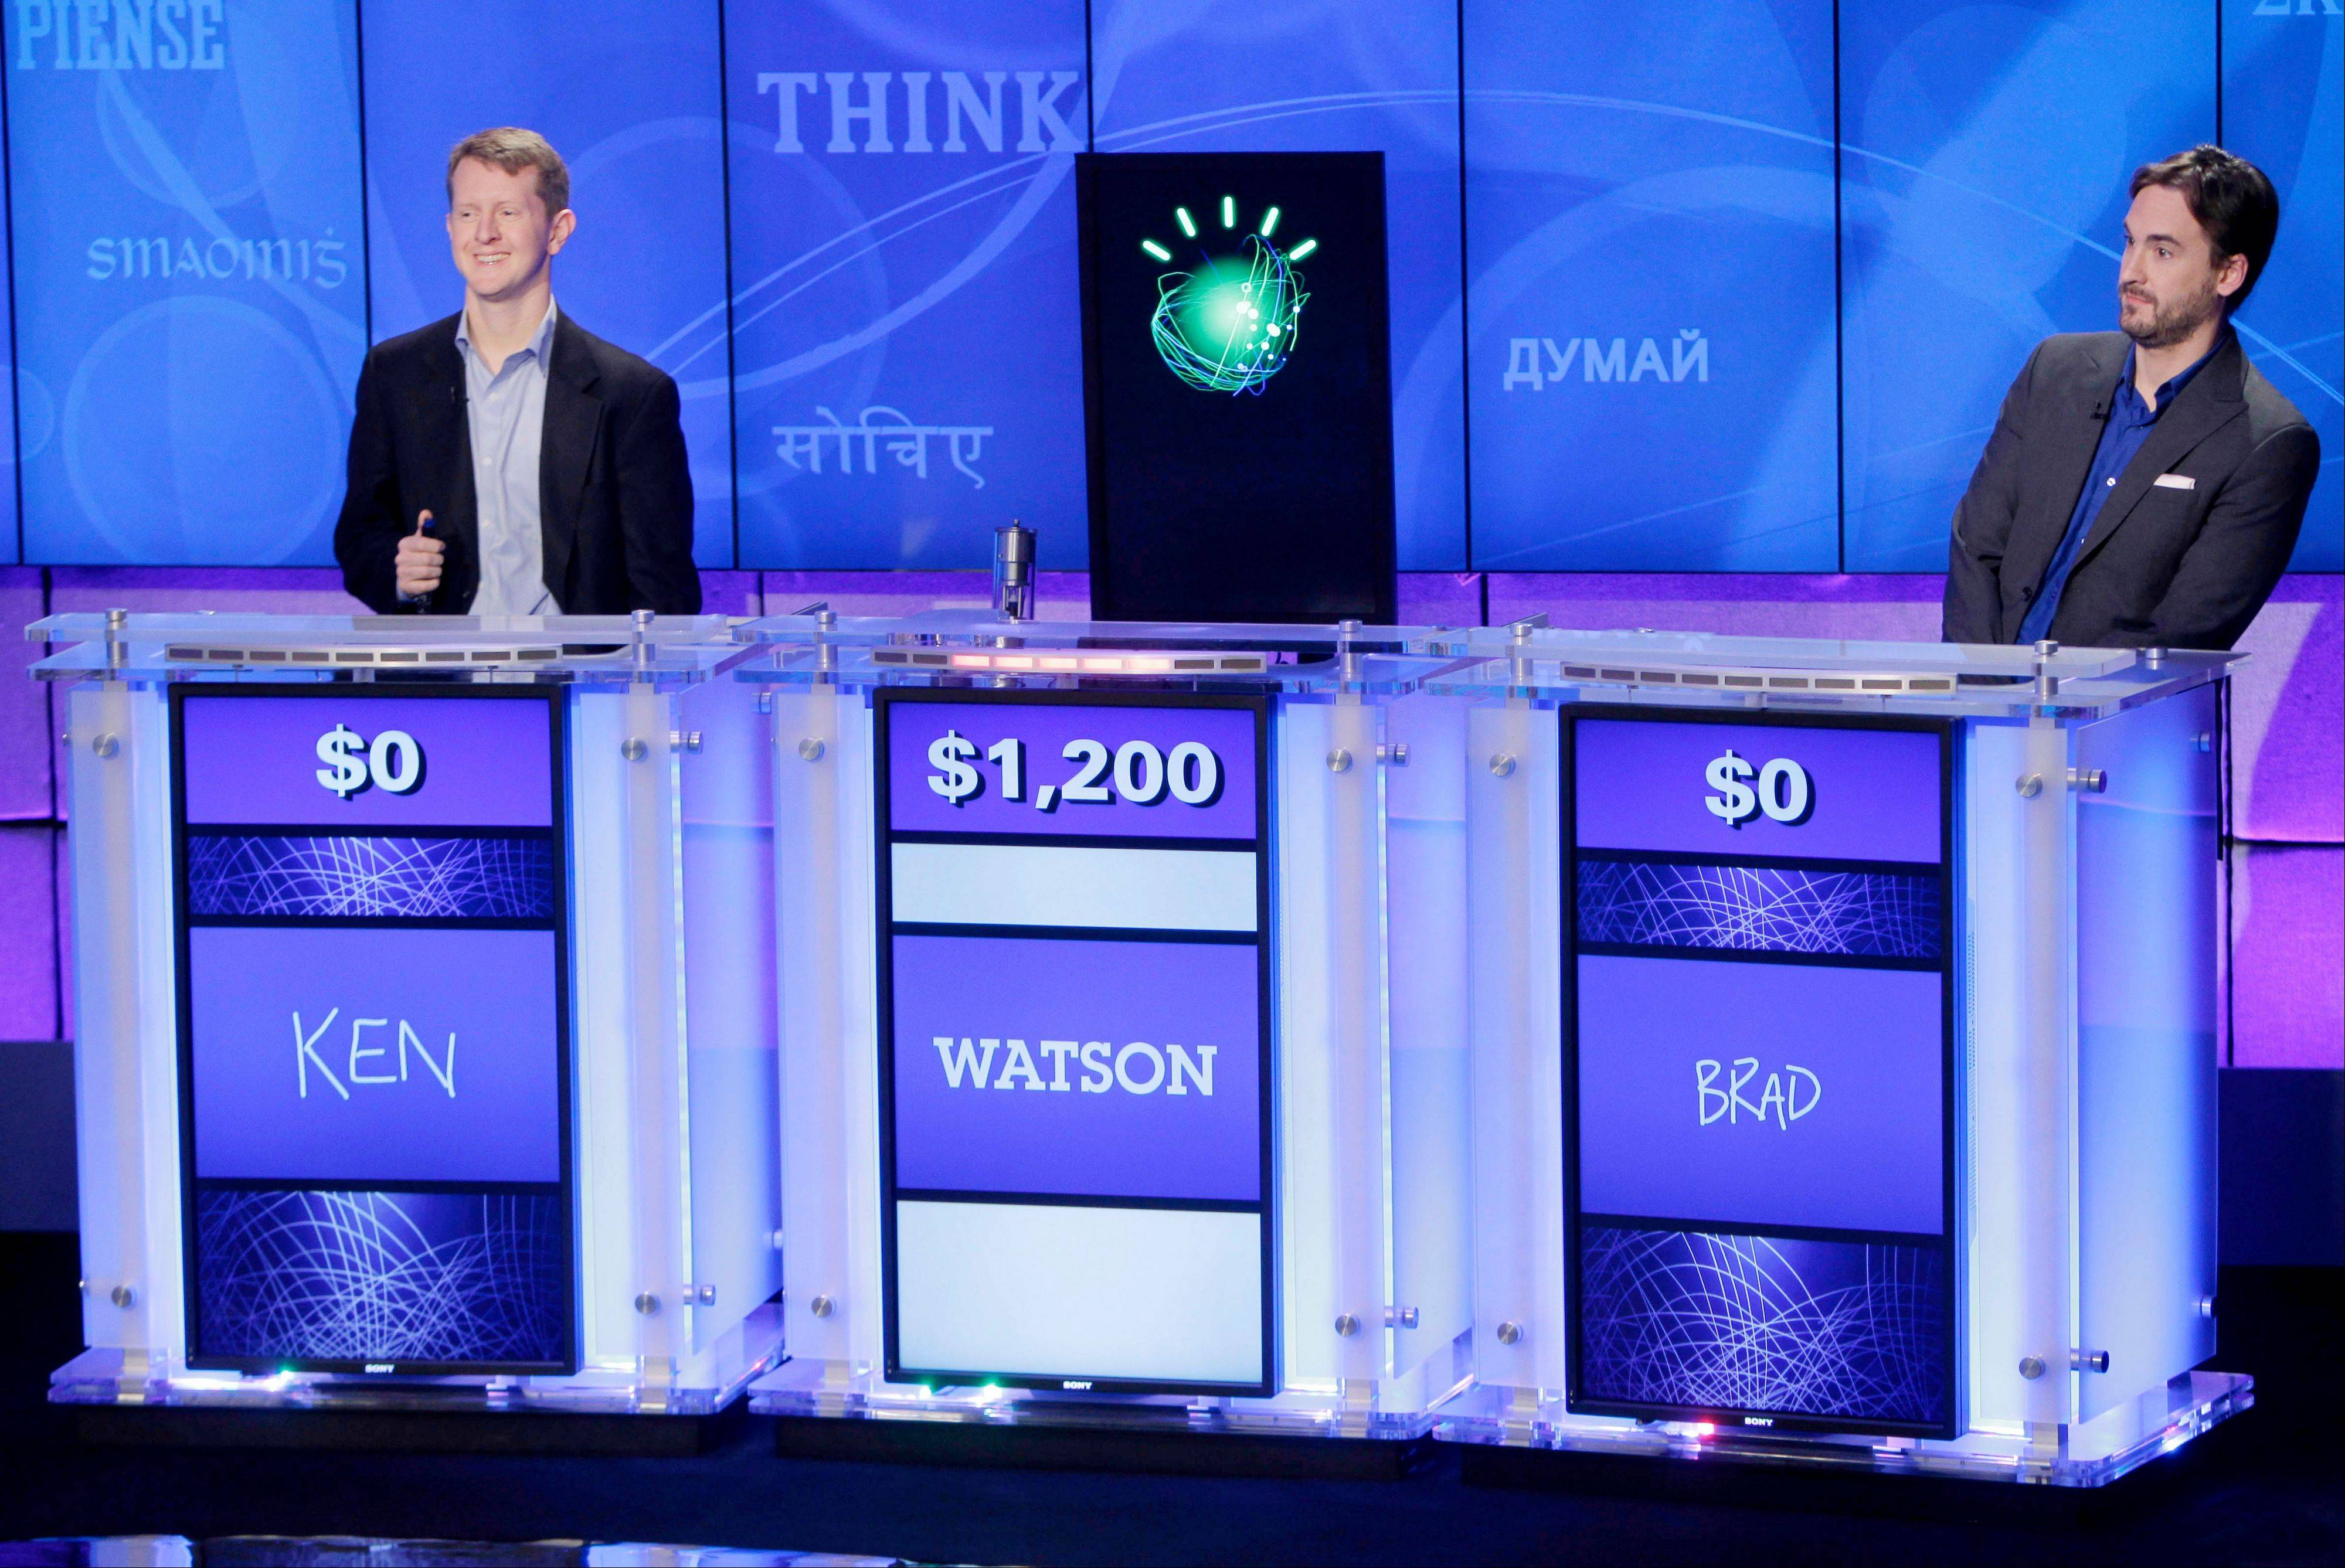 """Jeopardy!"" champions Ken Jennings, left, and Brad Rutter, right, flank a prop representing Watson during a practice round of the quiz show. Watson is being tapped by one of the nation's largest health insurers, WellPoint Inc., to help diagnose medical problems and authorize treatments."